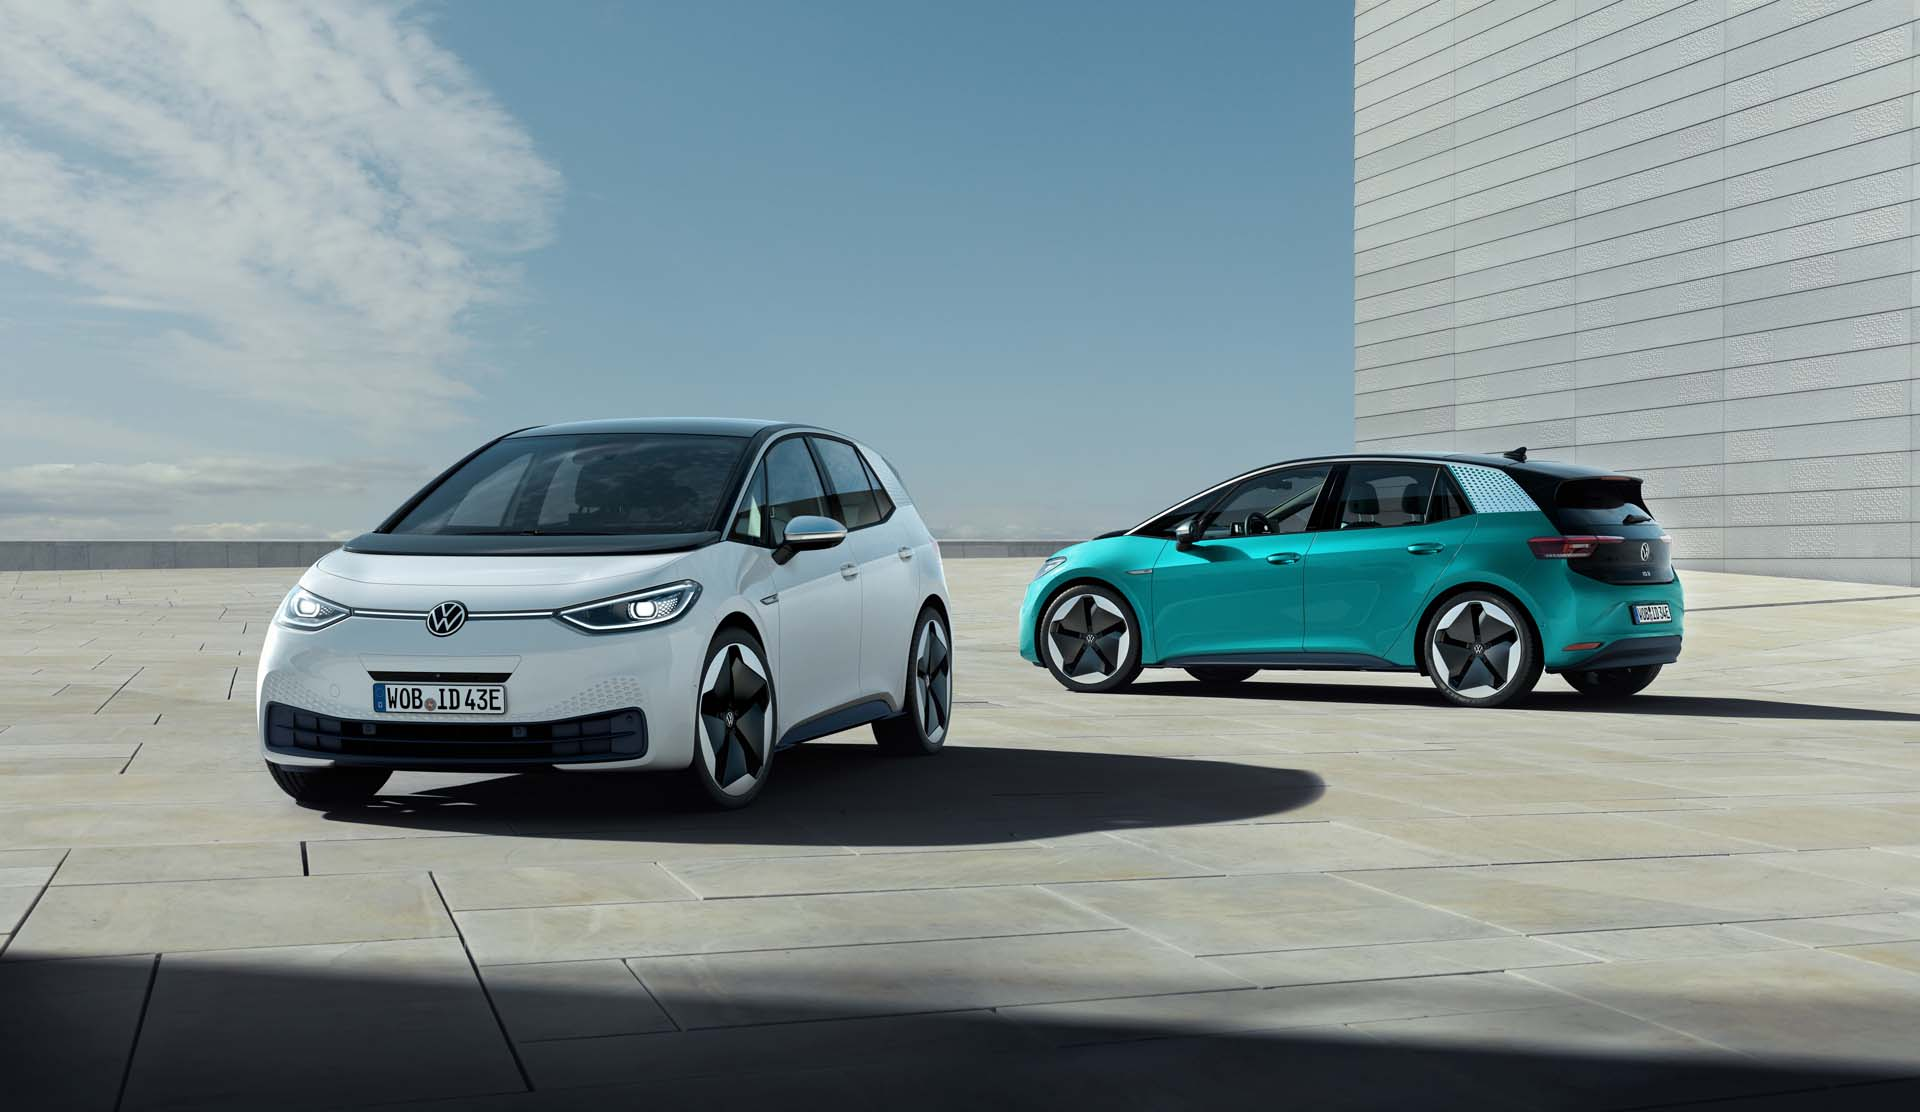 Analysis Suggests Volkswagen Electric Car Targets Are Out Of